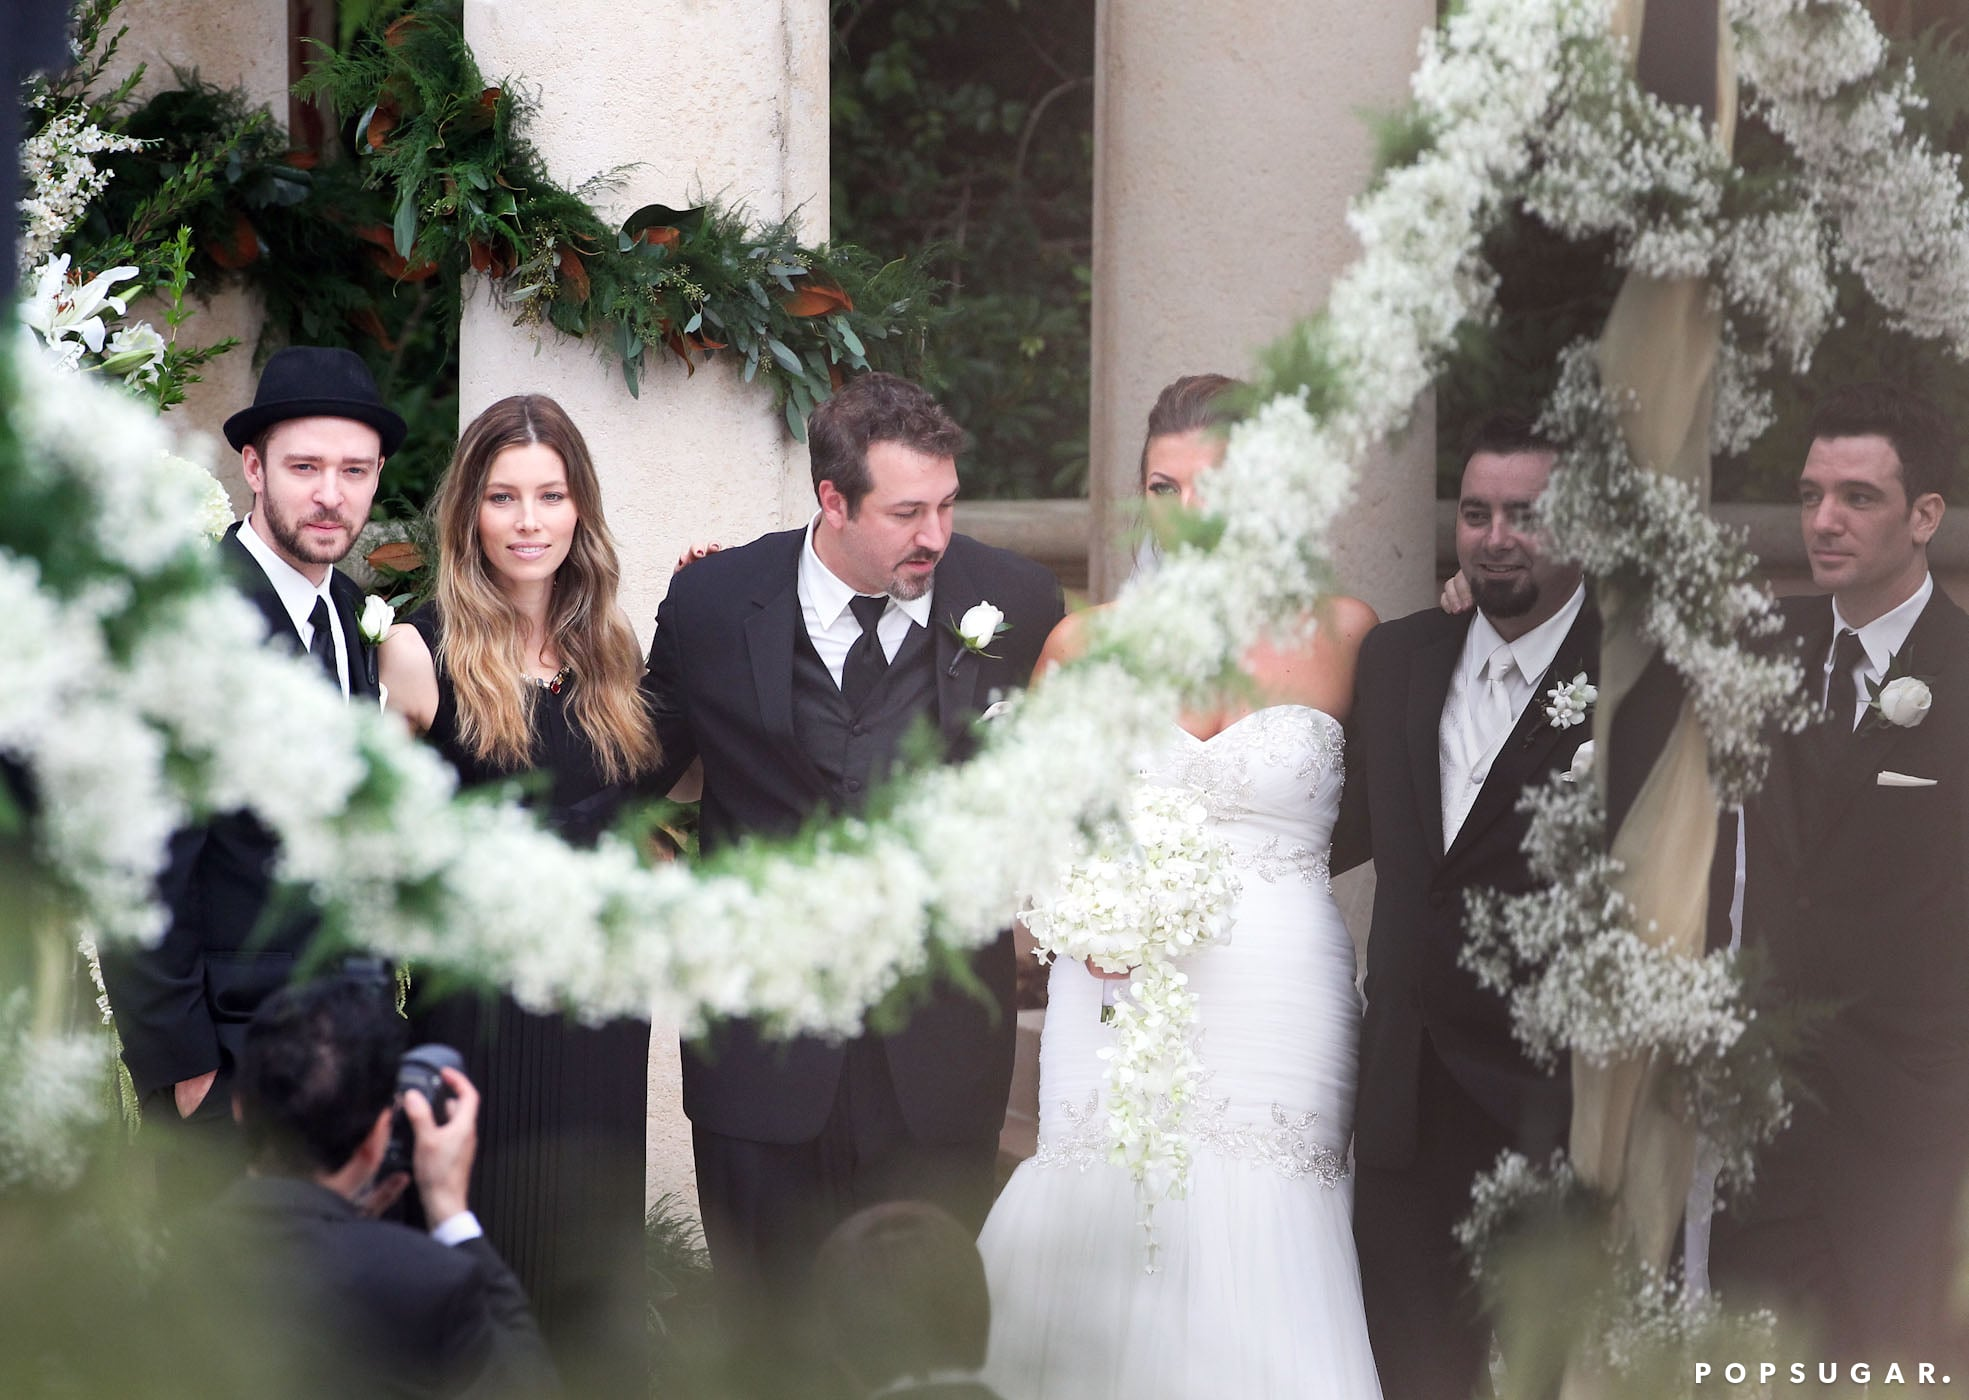 Chris Kirkpatrick married Karly Skladany in front of his former *NSYNC bandmates.